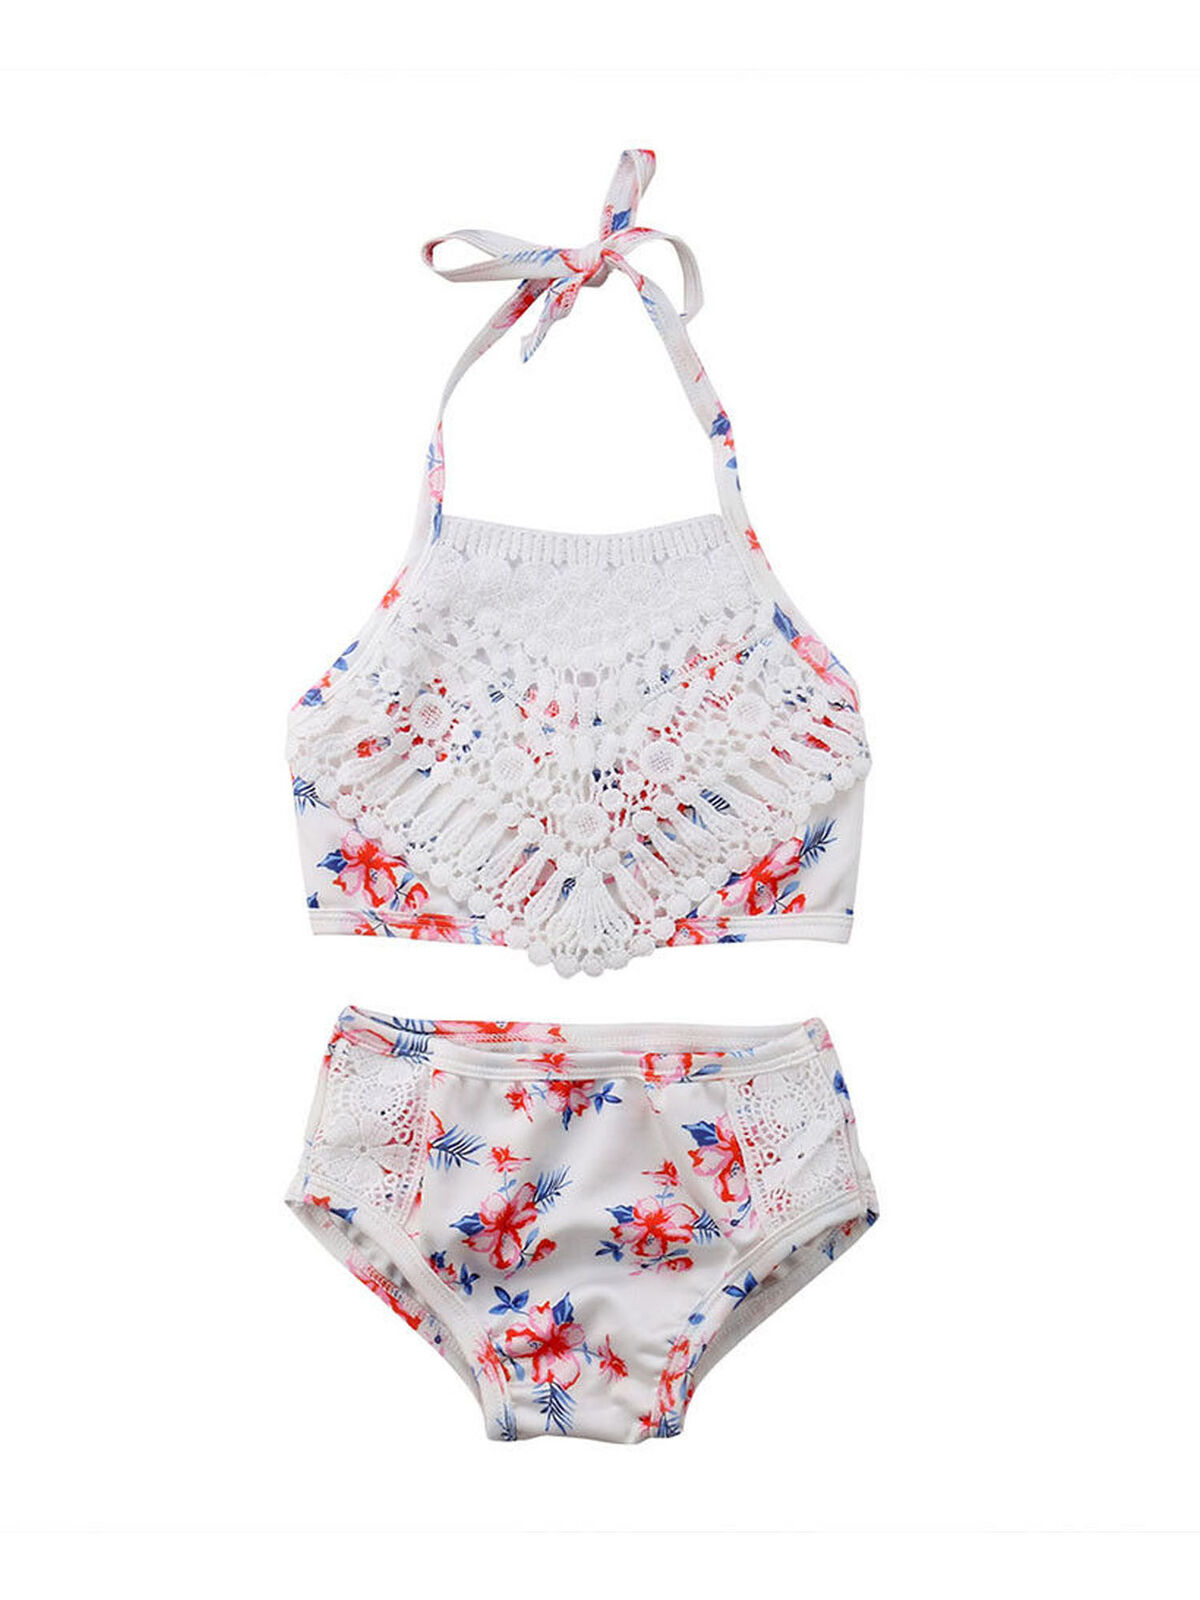 Toddler Kids Baby Girl Swimsuit Floral Bathing Suit Bikini Set Swimwear